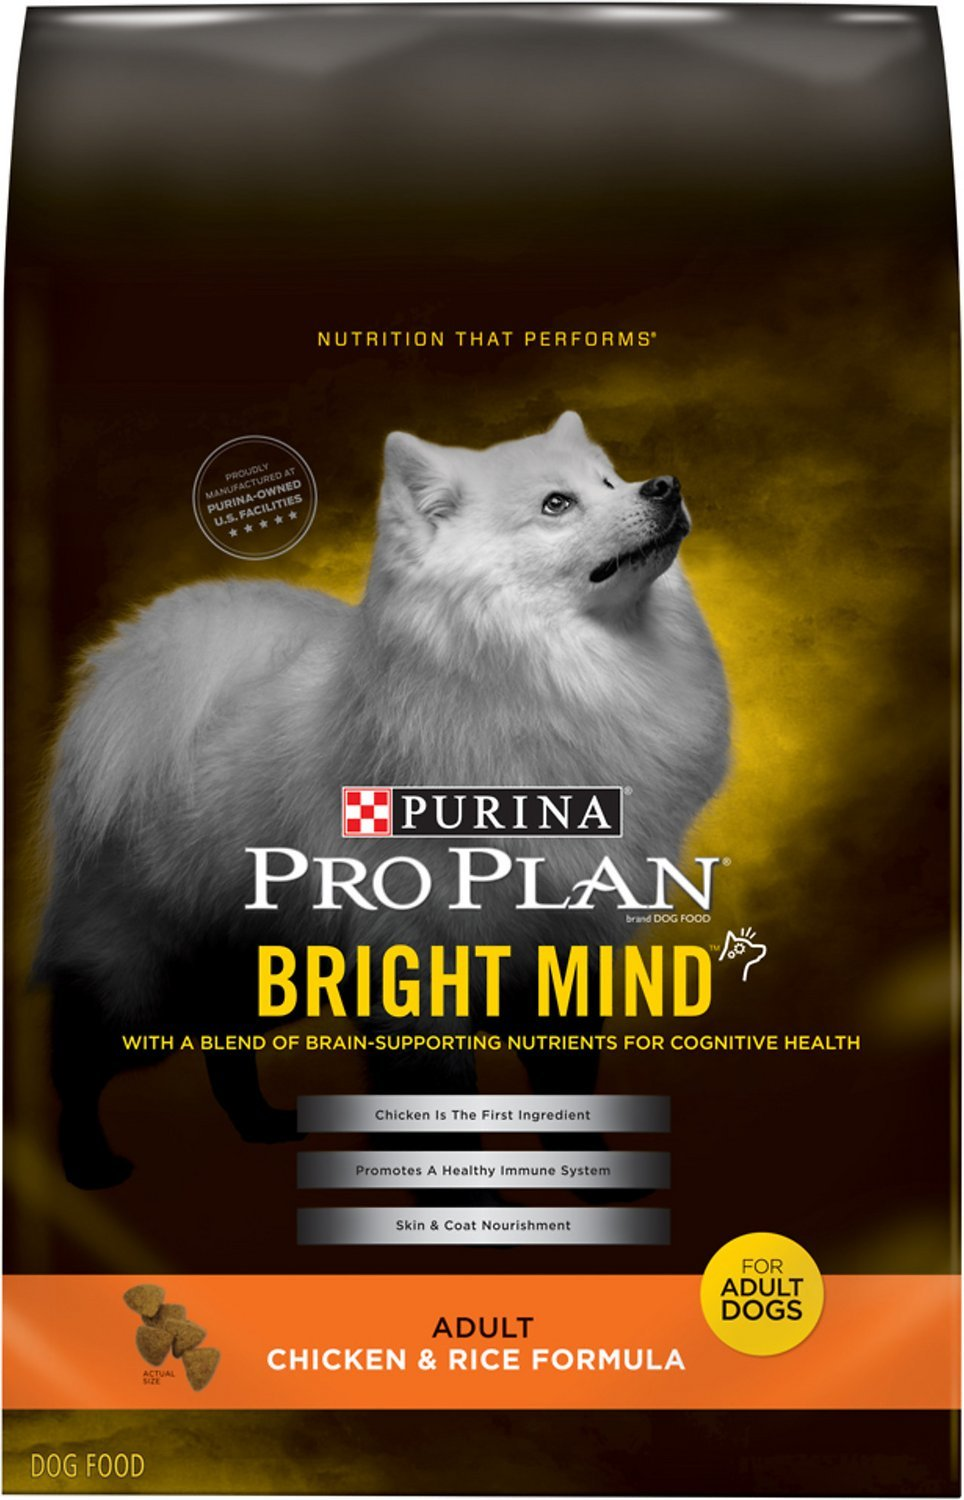 Purina Pro Plan Bright Mind Adult Chicken and Rice Formula Dry Dog Food 5lbs 00091